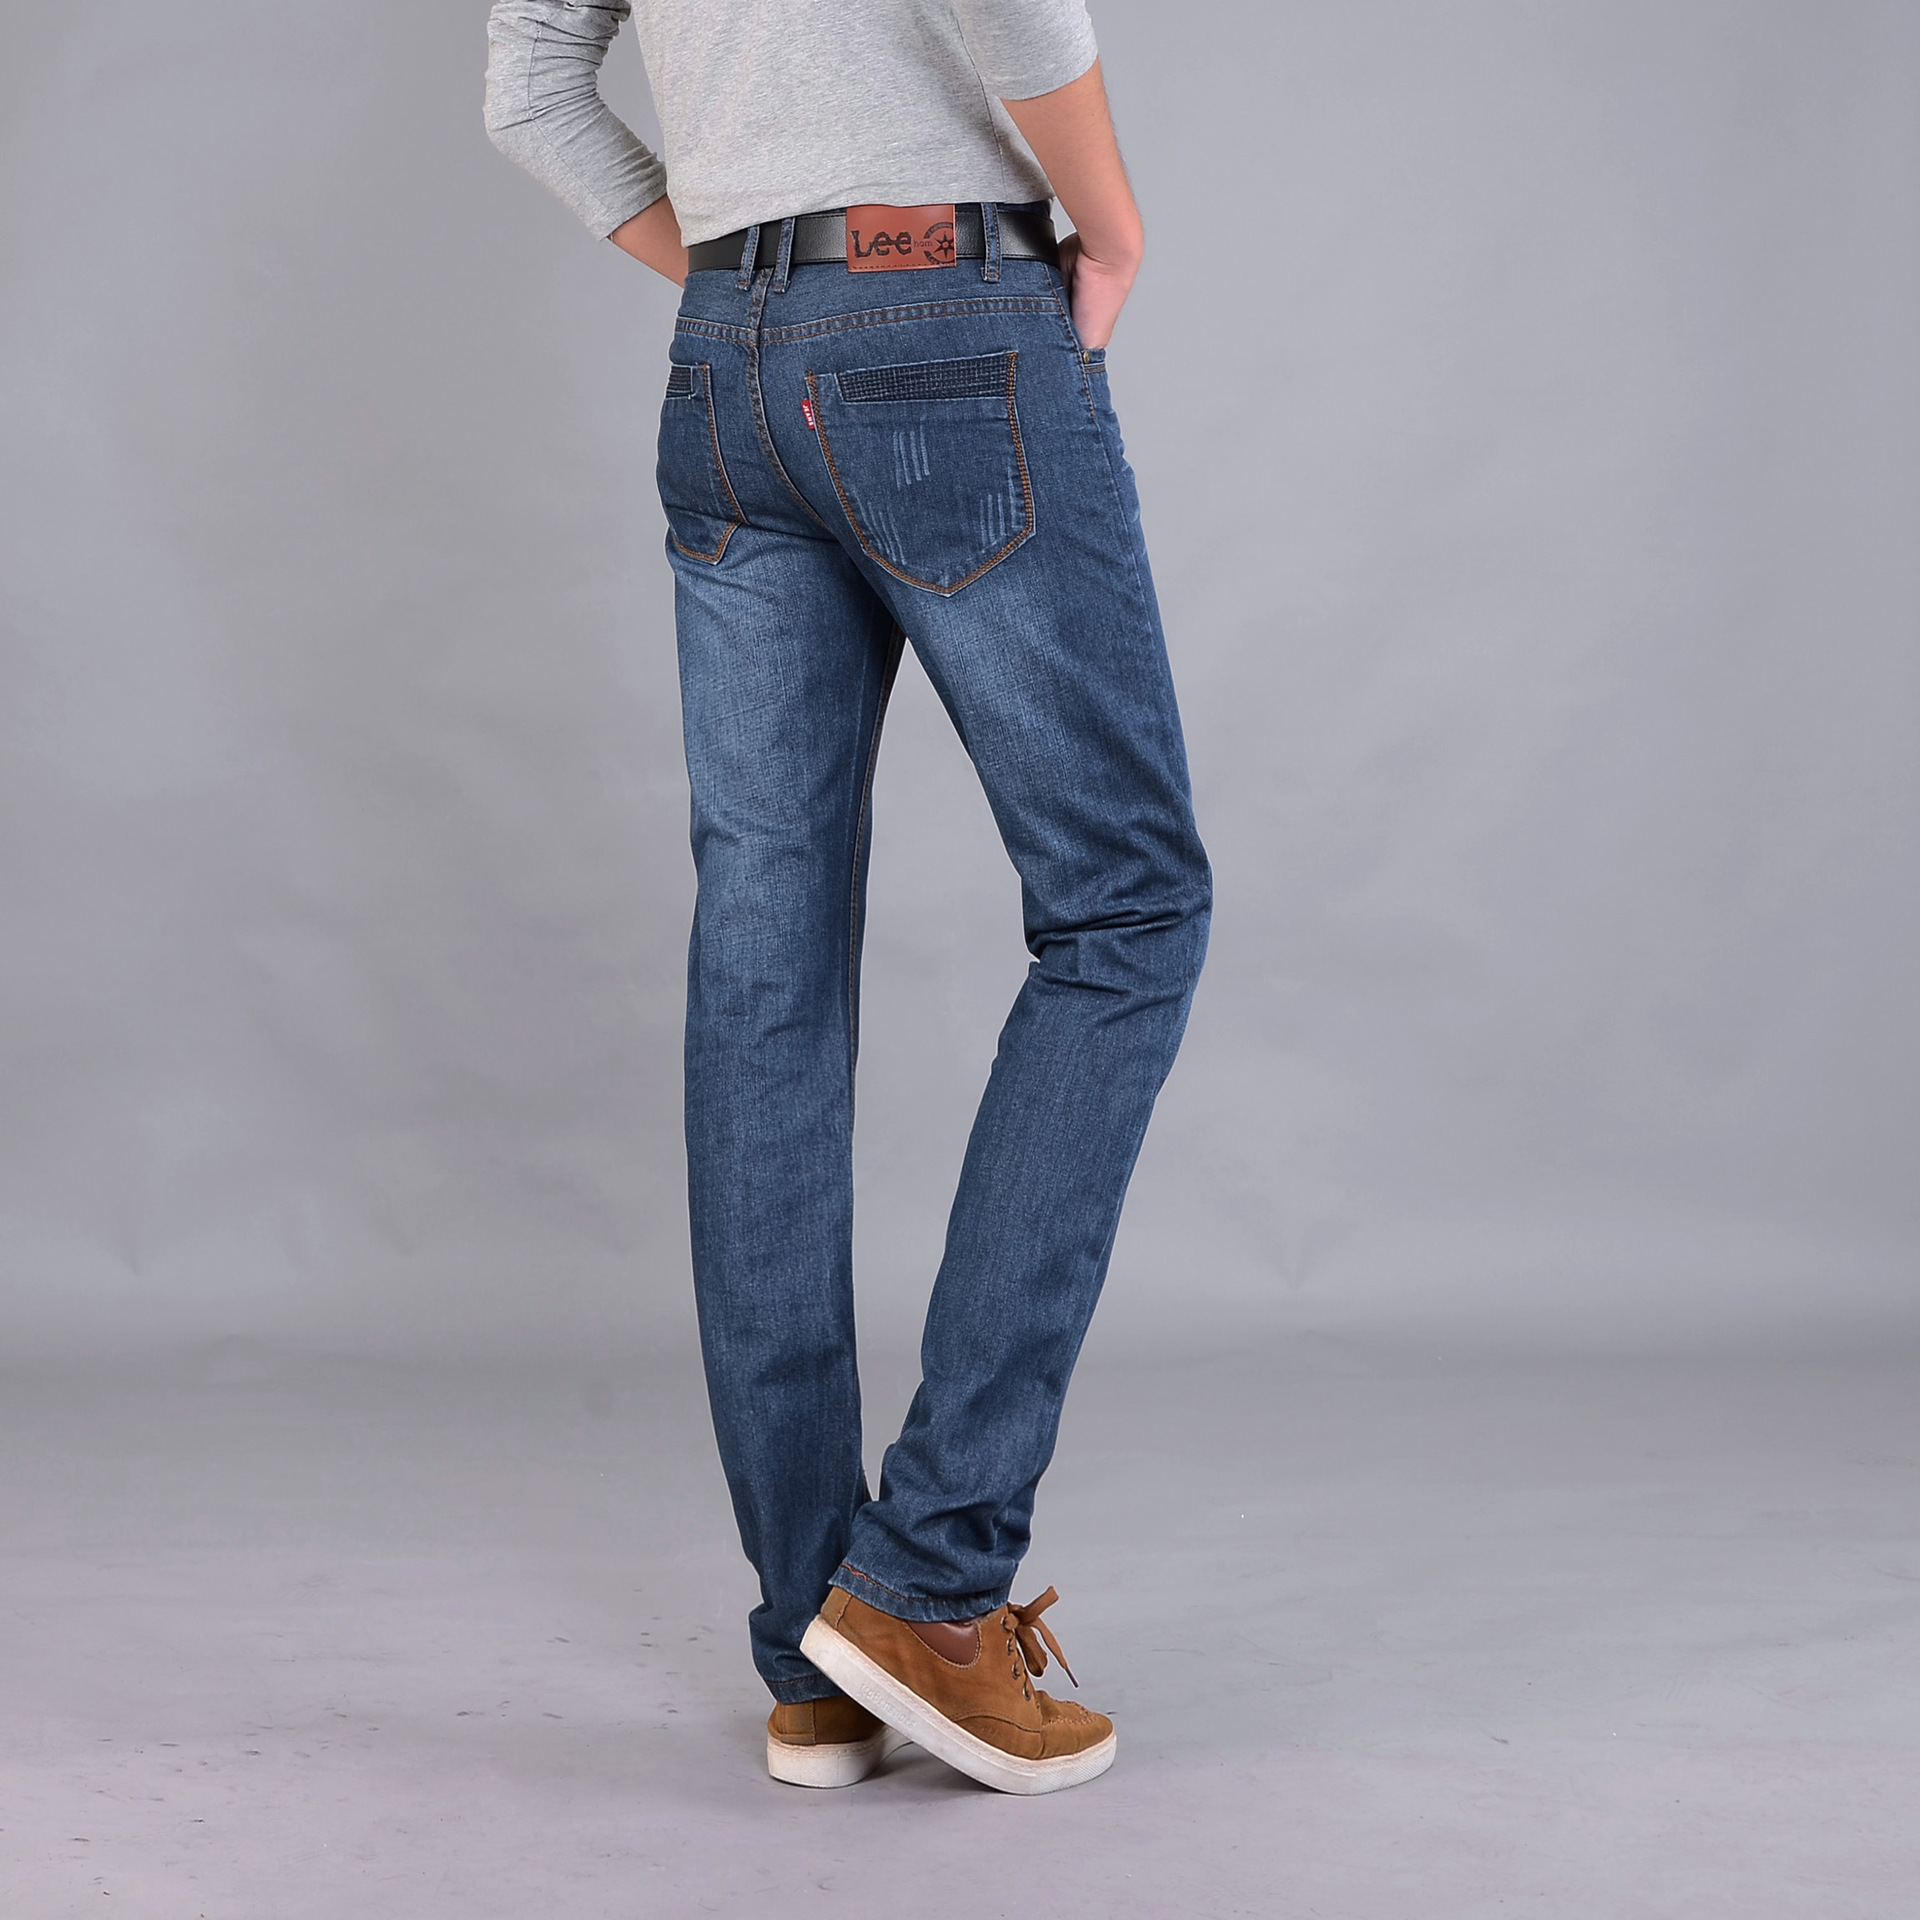 2018 New Style Fashion Straight-Cut Business Jeans Casual Trousers Middle-aged Men'S Wear Pocket Joint NZK Pants